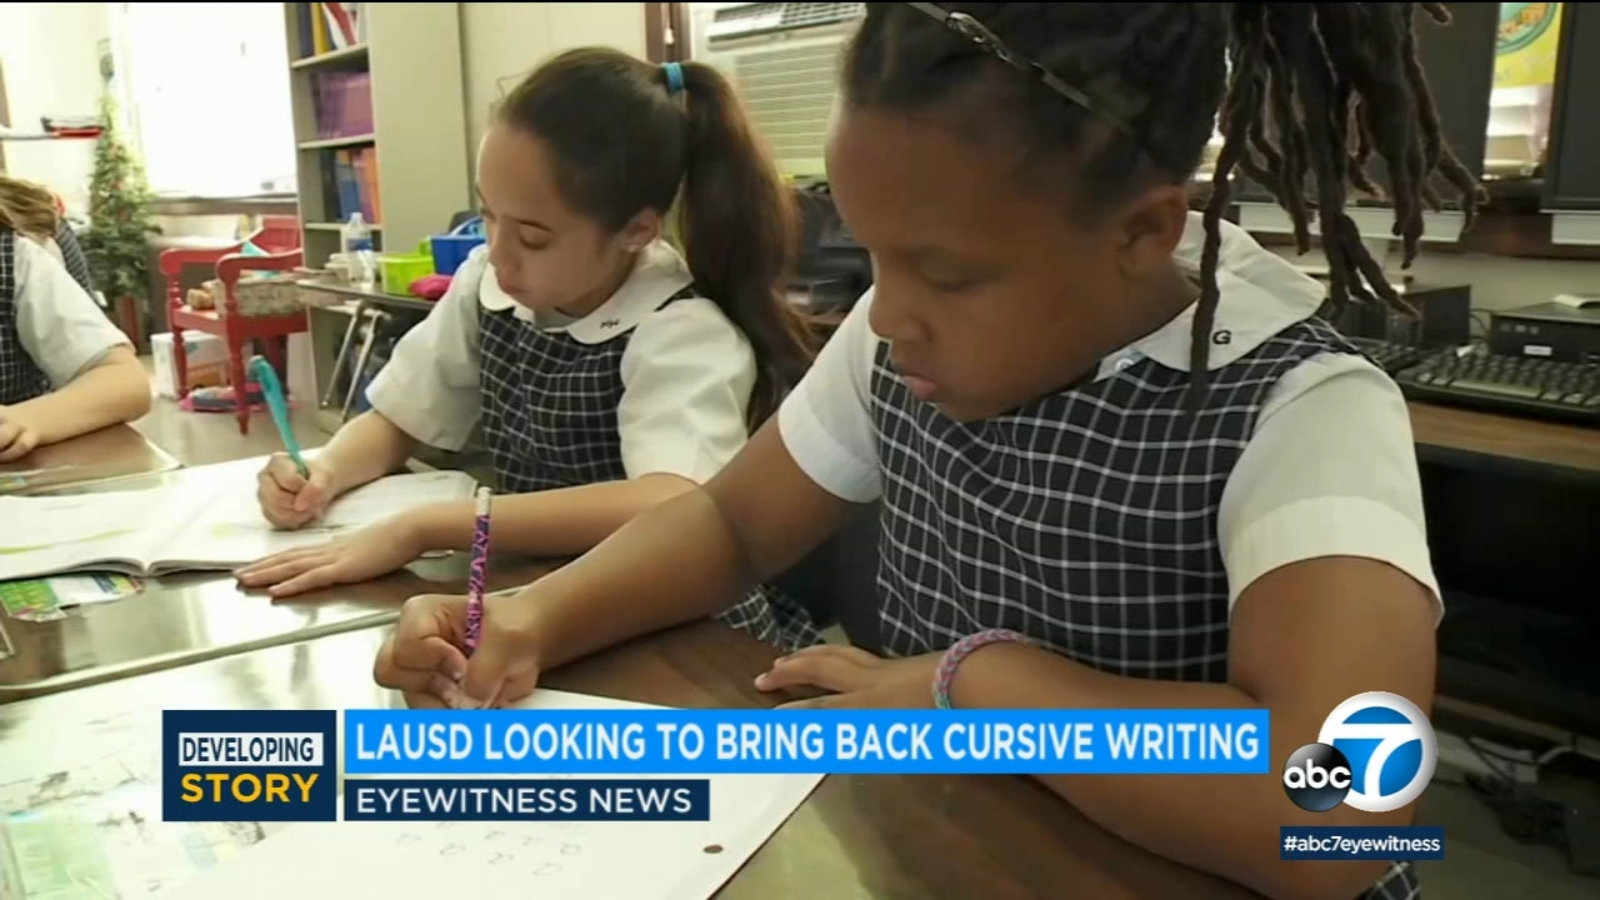 Cursive comeback: Proposal to reinstate teaching cursive at LAUSD schools gaining support